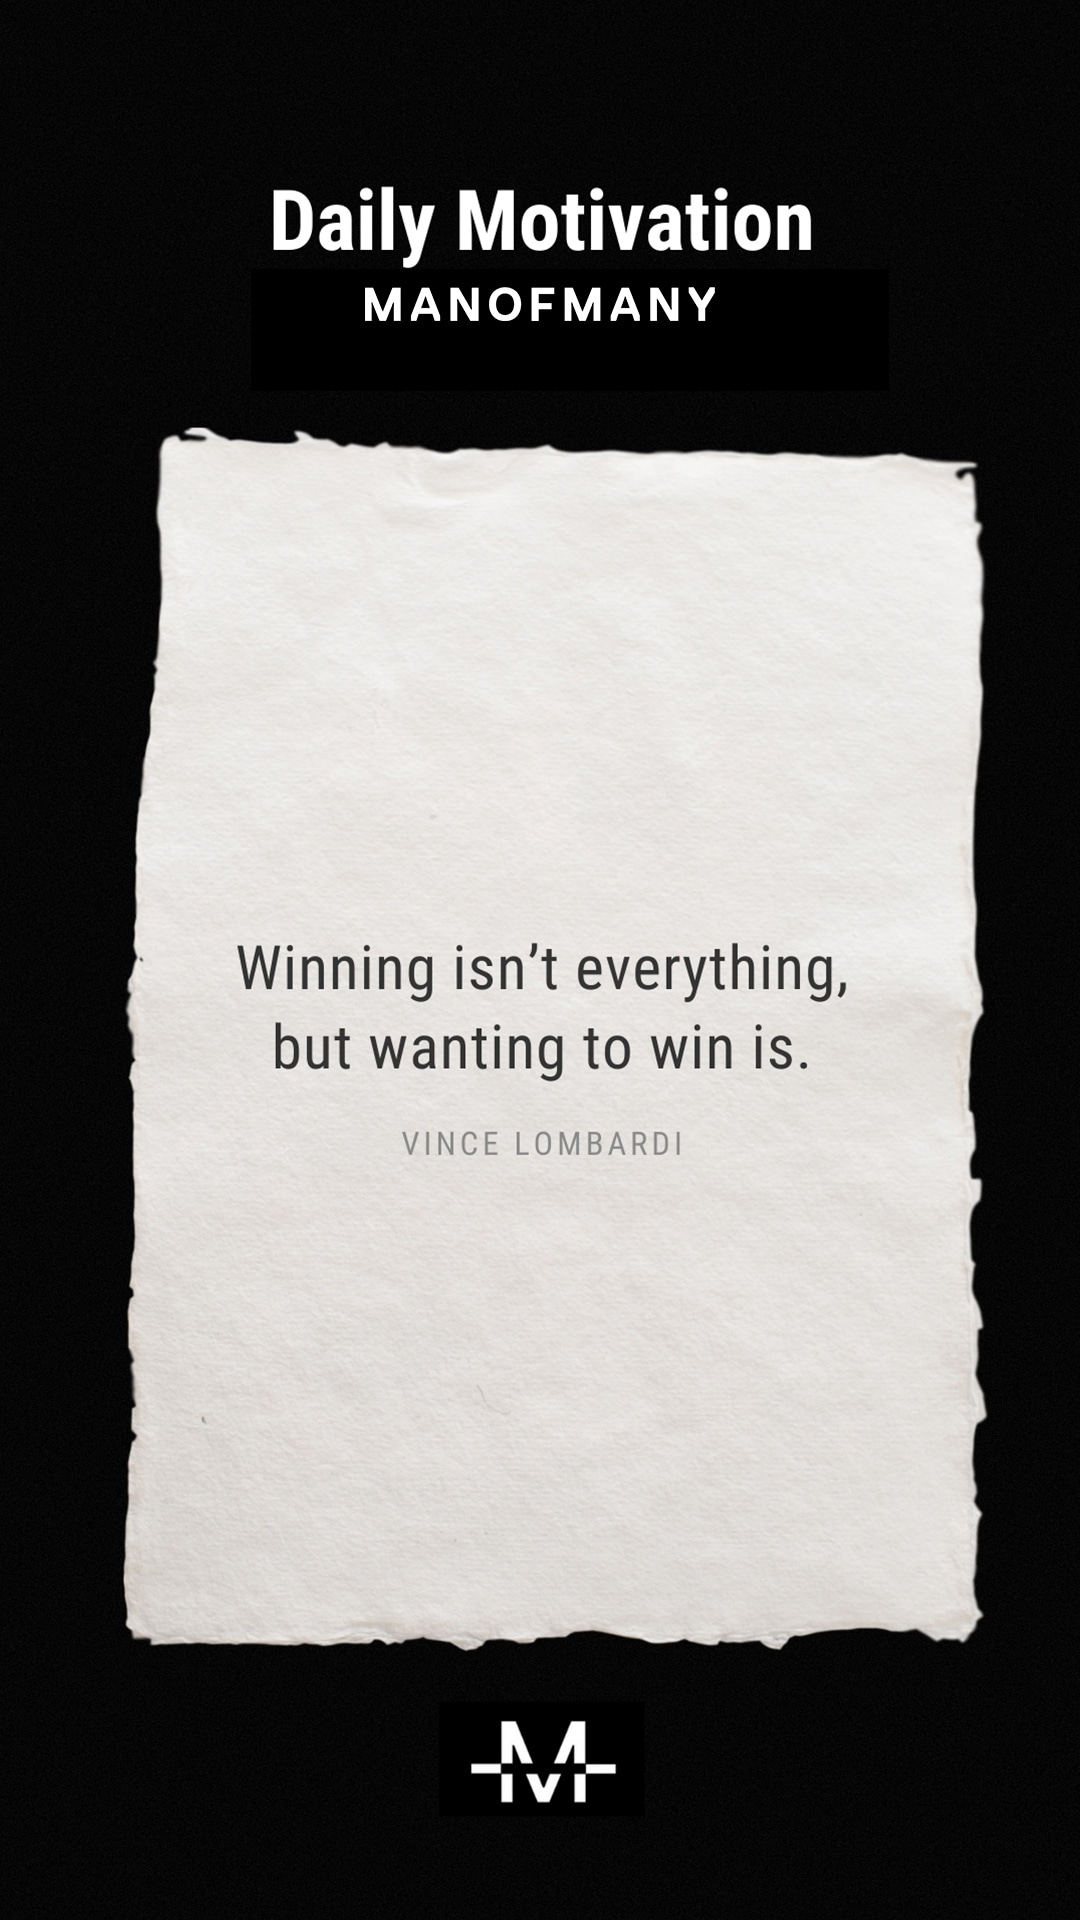 Winning isn't everything, but wanting to win is. –Vince Lombardi quote